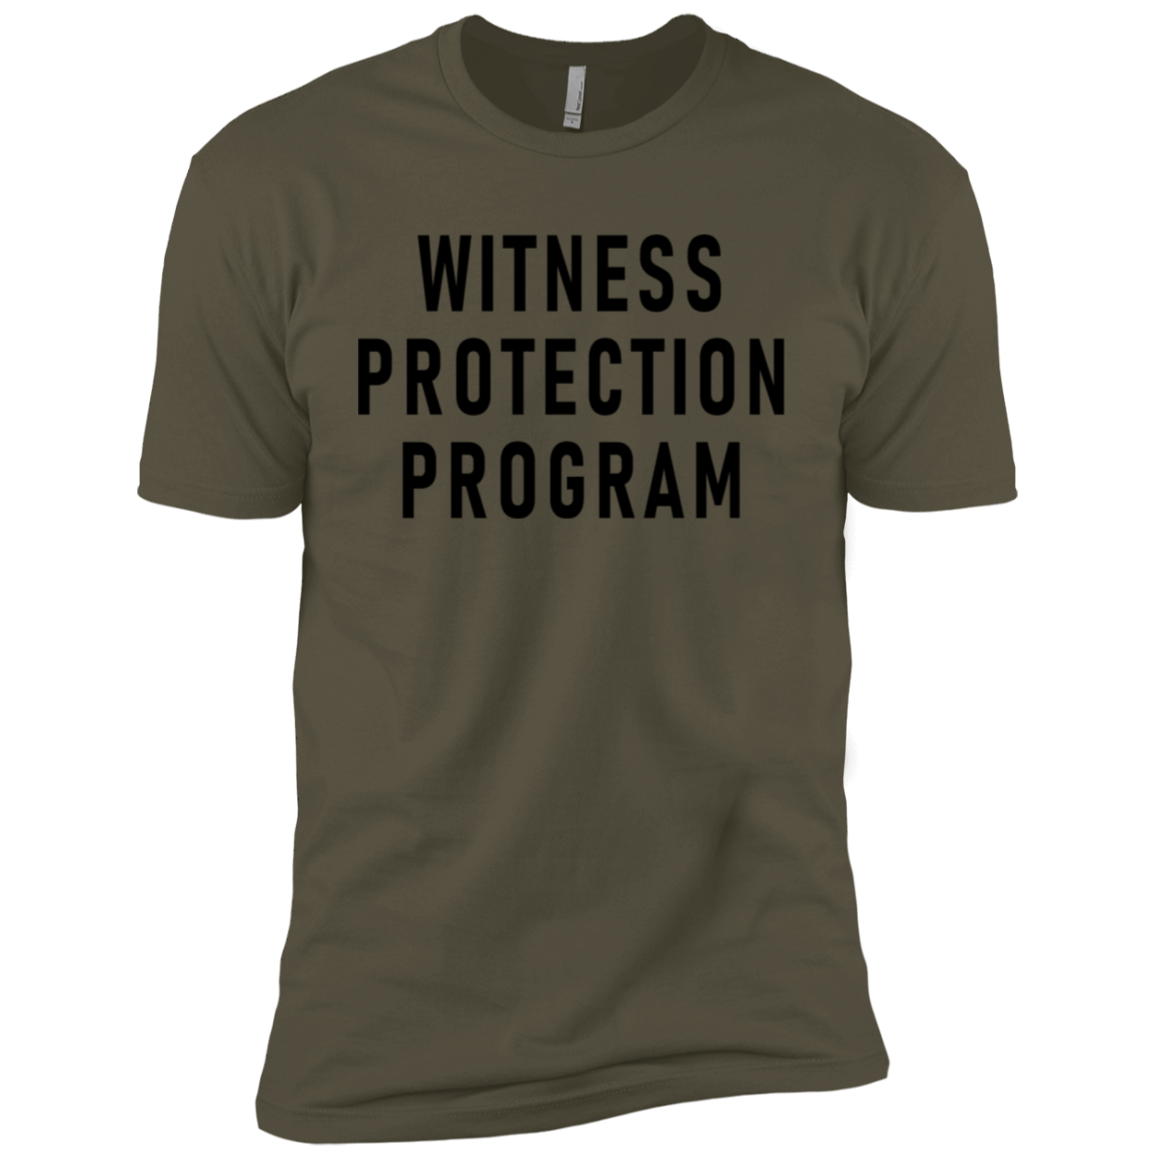 Witness Protection Program Men's Classic Tee